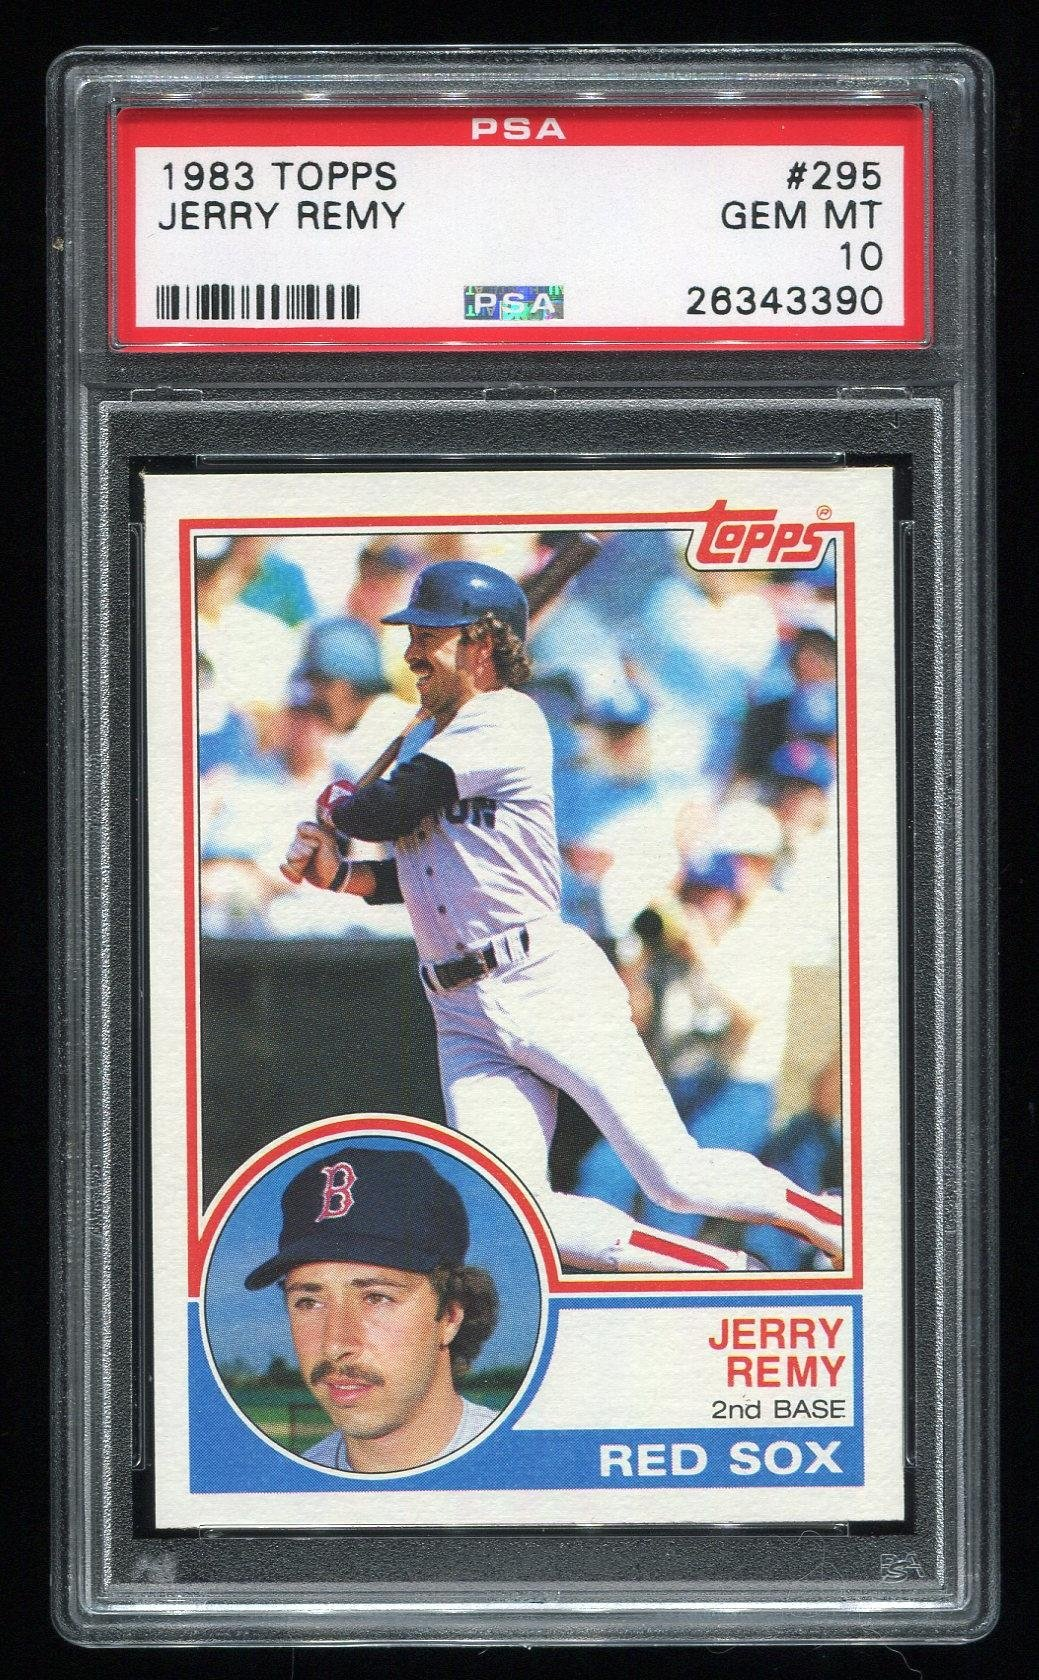 My Quest To Build A Graded 1983 Topps Baseball Set Page 4